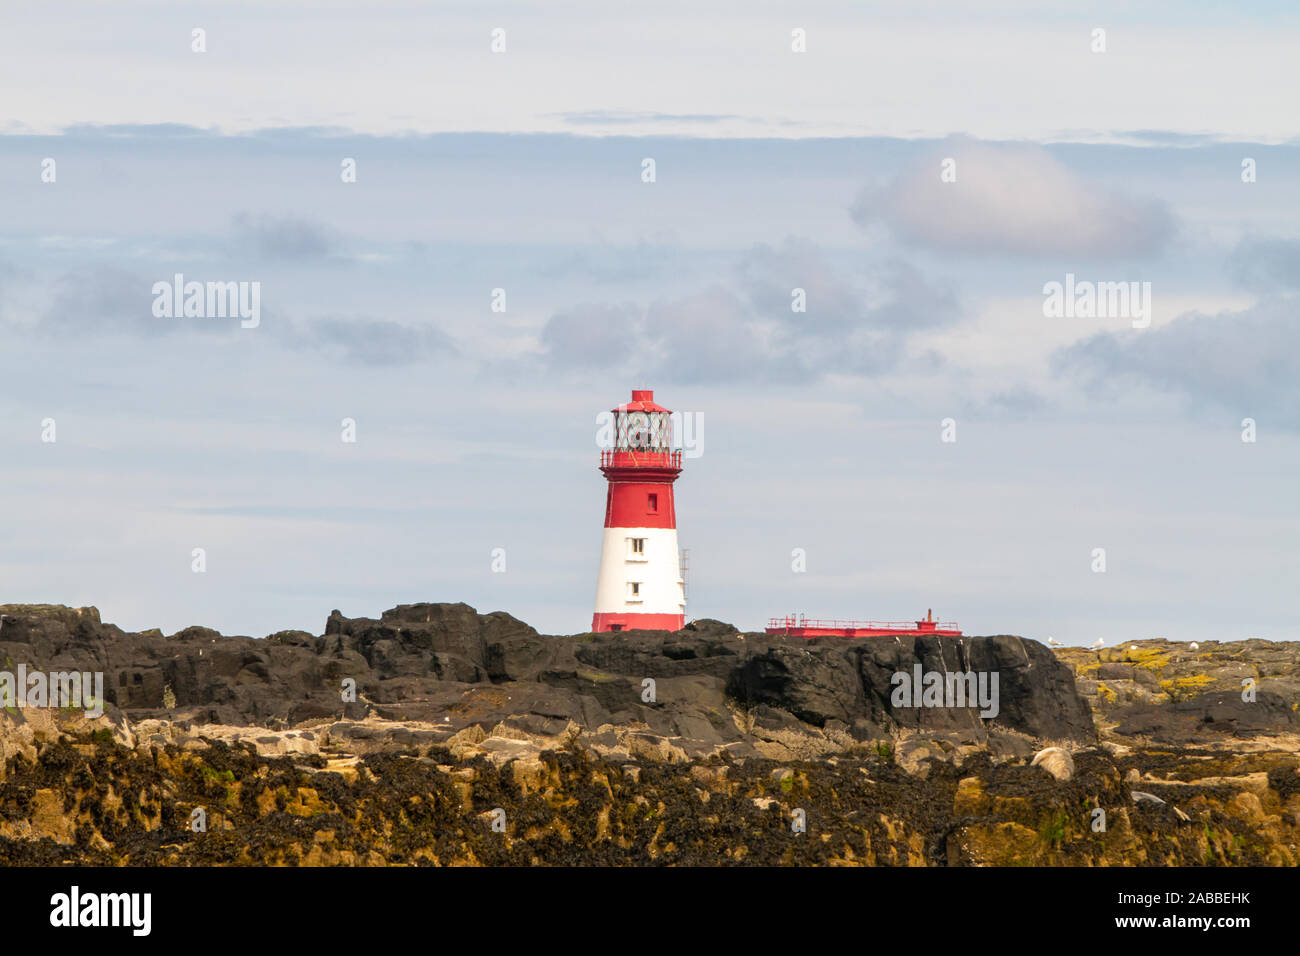 Longstone Lighthouse in white and red, on Longstone Rock in the outer group of the Farne Islands off the Northumberland Coast Stock Photo